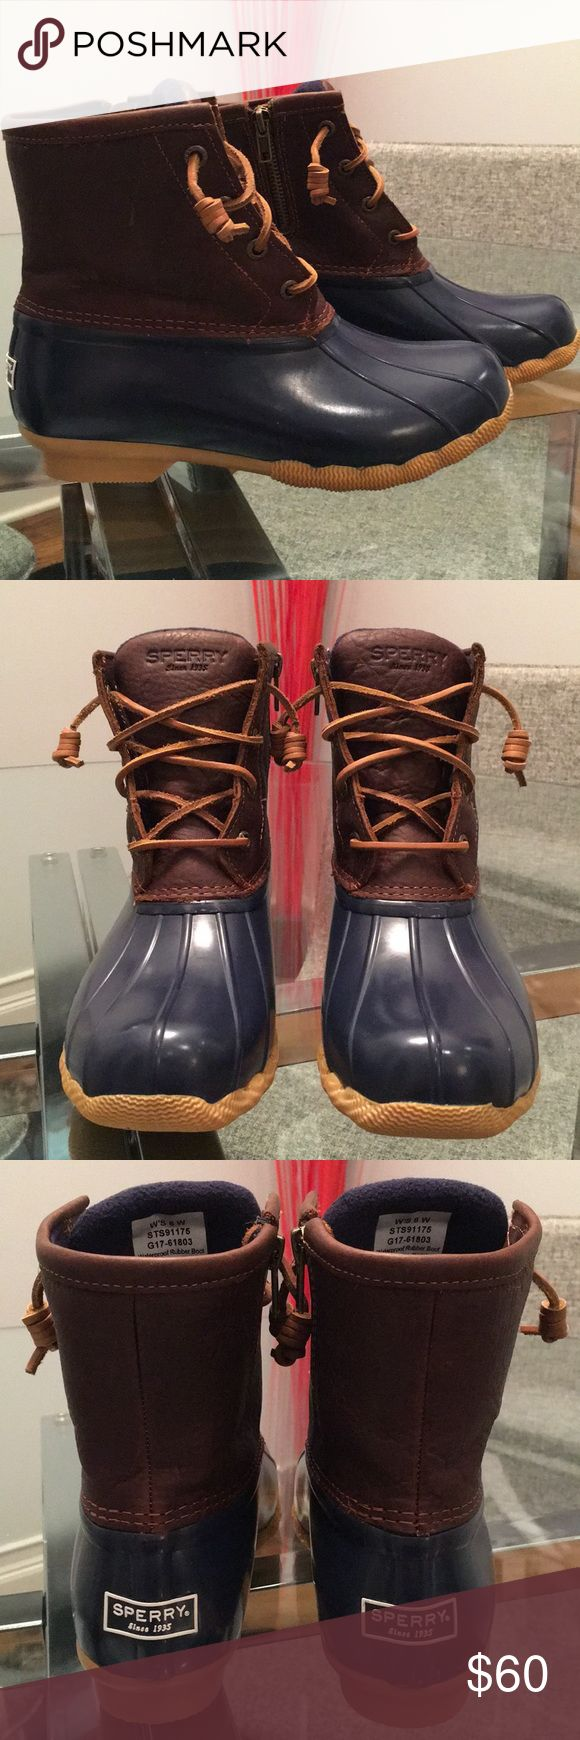 Women's Sperry Saltwater Duck Boot Women's Sperry Saltwater Duck Boot. Waterproof rubber duck toe. Side zipper for easy on and off. Barrel tie lacing keeps from laces getting untied. Microfleece lining. Non-marking rubber outsole.  New, never worn. Sperry Shoes Winter & Rain Boots